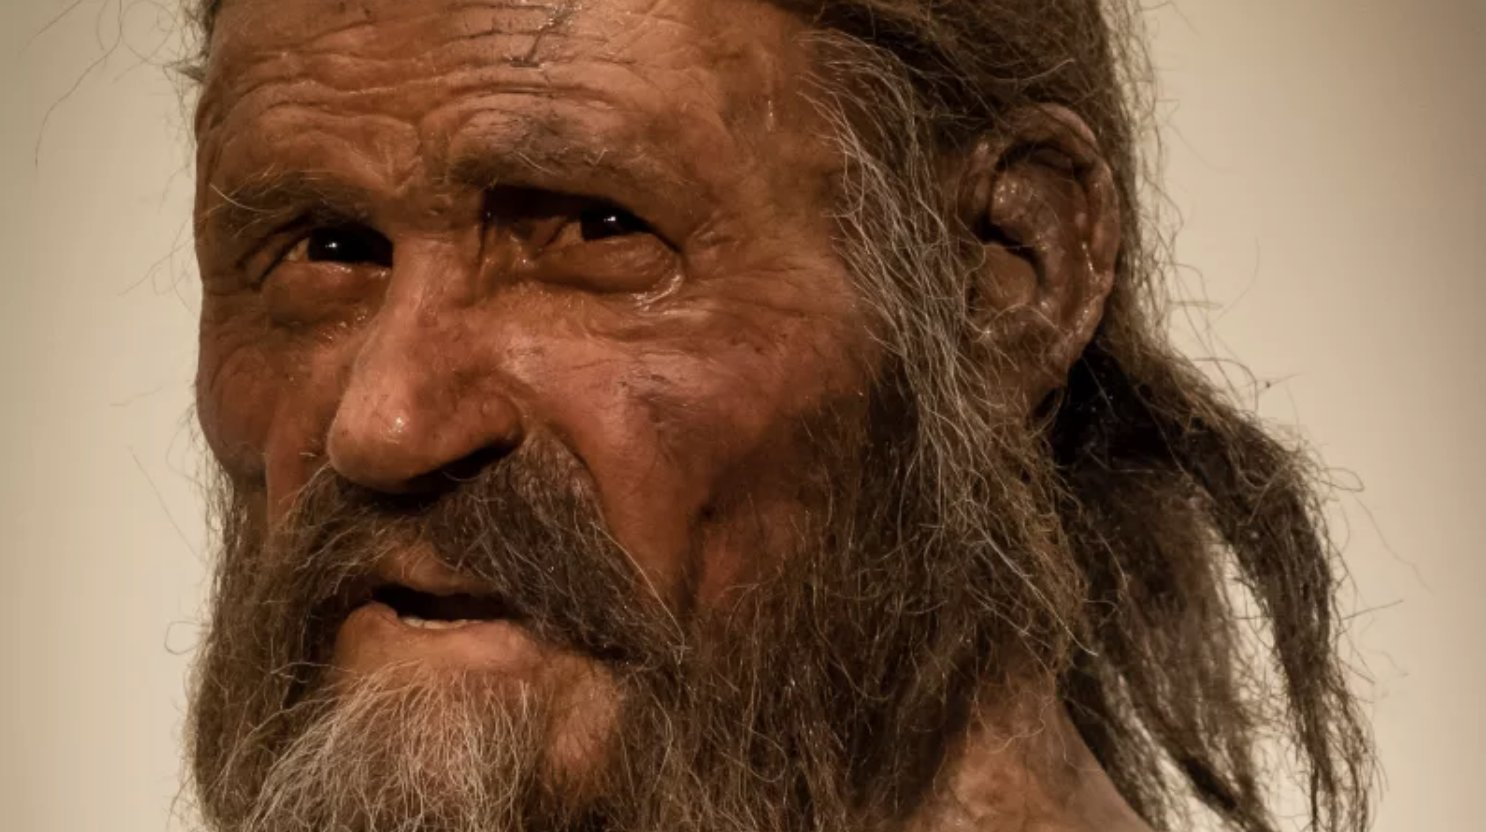 Final days of Ötzi the iceman revealed through new analysis of his tools https://t.co/LgFnqLFdY4 https://t.co/uRDDxmPxSo